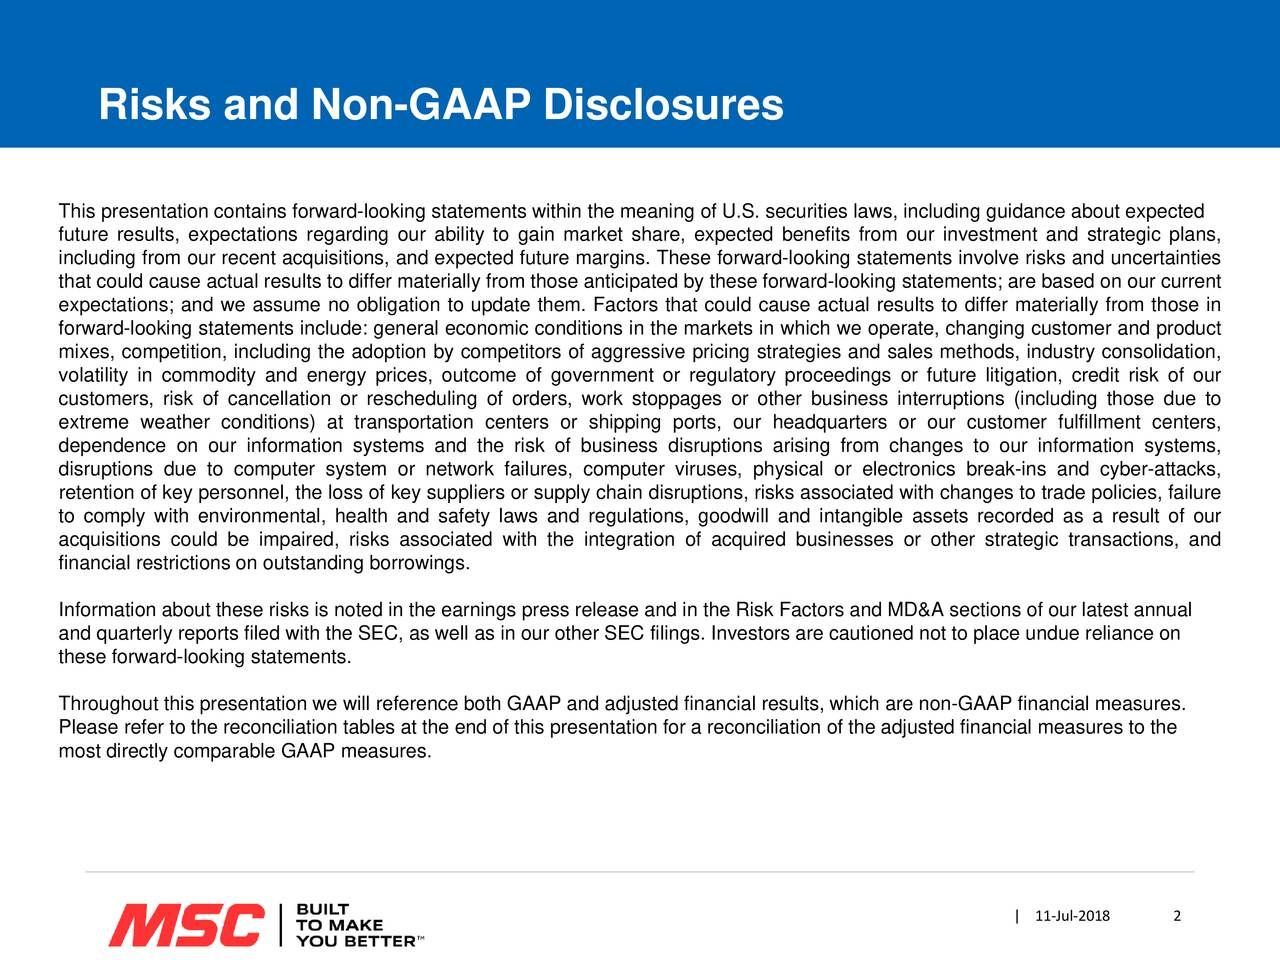 This presentation contains forward-looking statements within the meaning of U.S. securities laws, including guidance about expected future results, expectations regarding our ability to gain market share, expected benefits from our investment and strategic plans, including from our recent acquisitions, and expected future margins. These forward-looking statements involve risks and uncertainties that could cause actual results to differ materially from those anticipated by these forward-looking statements; are based on our current expectations; and we assume no obligation to update them. Factors that could cause actual results to differ materially from those in forward-looking statements include: general economic conditions in the markets in which we operate, changing customer and product mixes, competition, including the adoption by competitors of aggressive pricing strategies and sales methods, industry consolidation, volatility in commodity and energy prices, outcome of government or regulatory proceedings or future litigation, credit risk of our customers, risk of cancellation or rescheduling of orders, work stoppages or other business interruptions (including those due to extreme weather conditions) at transportation centers or shipping ports, our headquarters or our customer fulfillment centers, dependence on our information systems and the risk of business disruptions arising from changes to our information systems, disruptions due to computer system or network failures, computer viruses, physical or electronics break-ins and cyber-attacks, retention of key personnel, the loss of key suppliers or supply chain disruptions, risks associated with changes to trade policies, failure to comply with environmental, health and safety laws and regulations, goodwill and intangible assets recorded as a result of our acquisitions could be impaired, risks associated with the integration of acquired businesses or other strategic transactions, and financial restrictions on ou